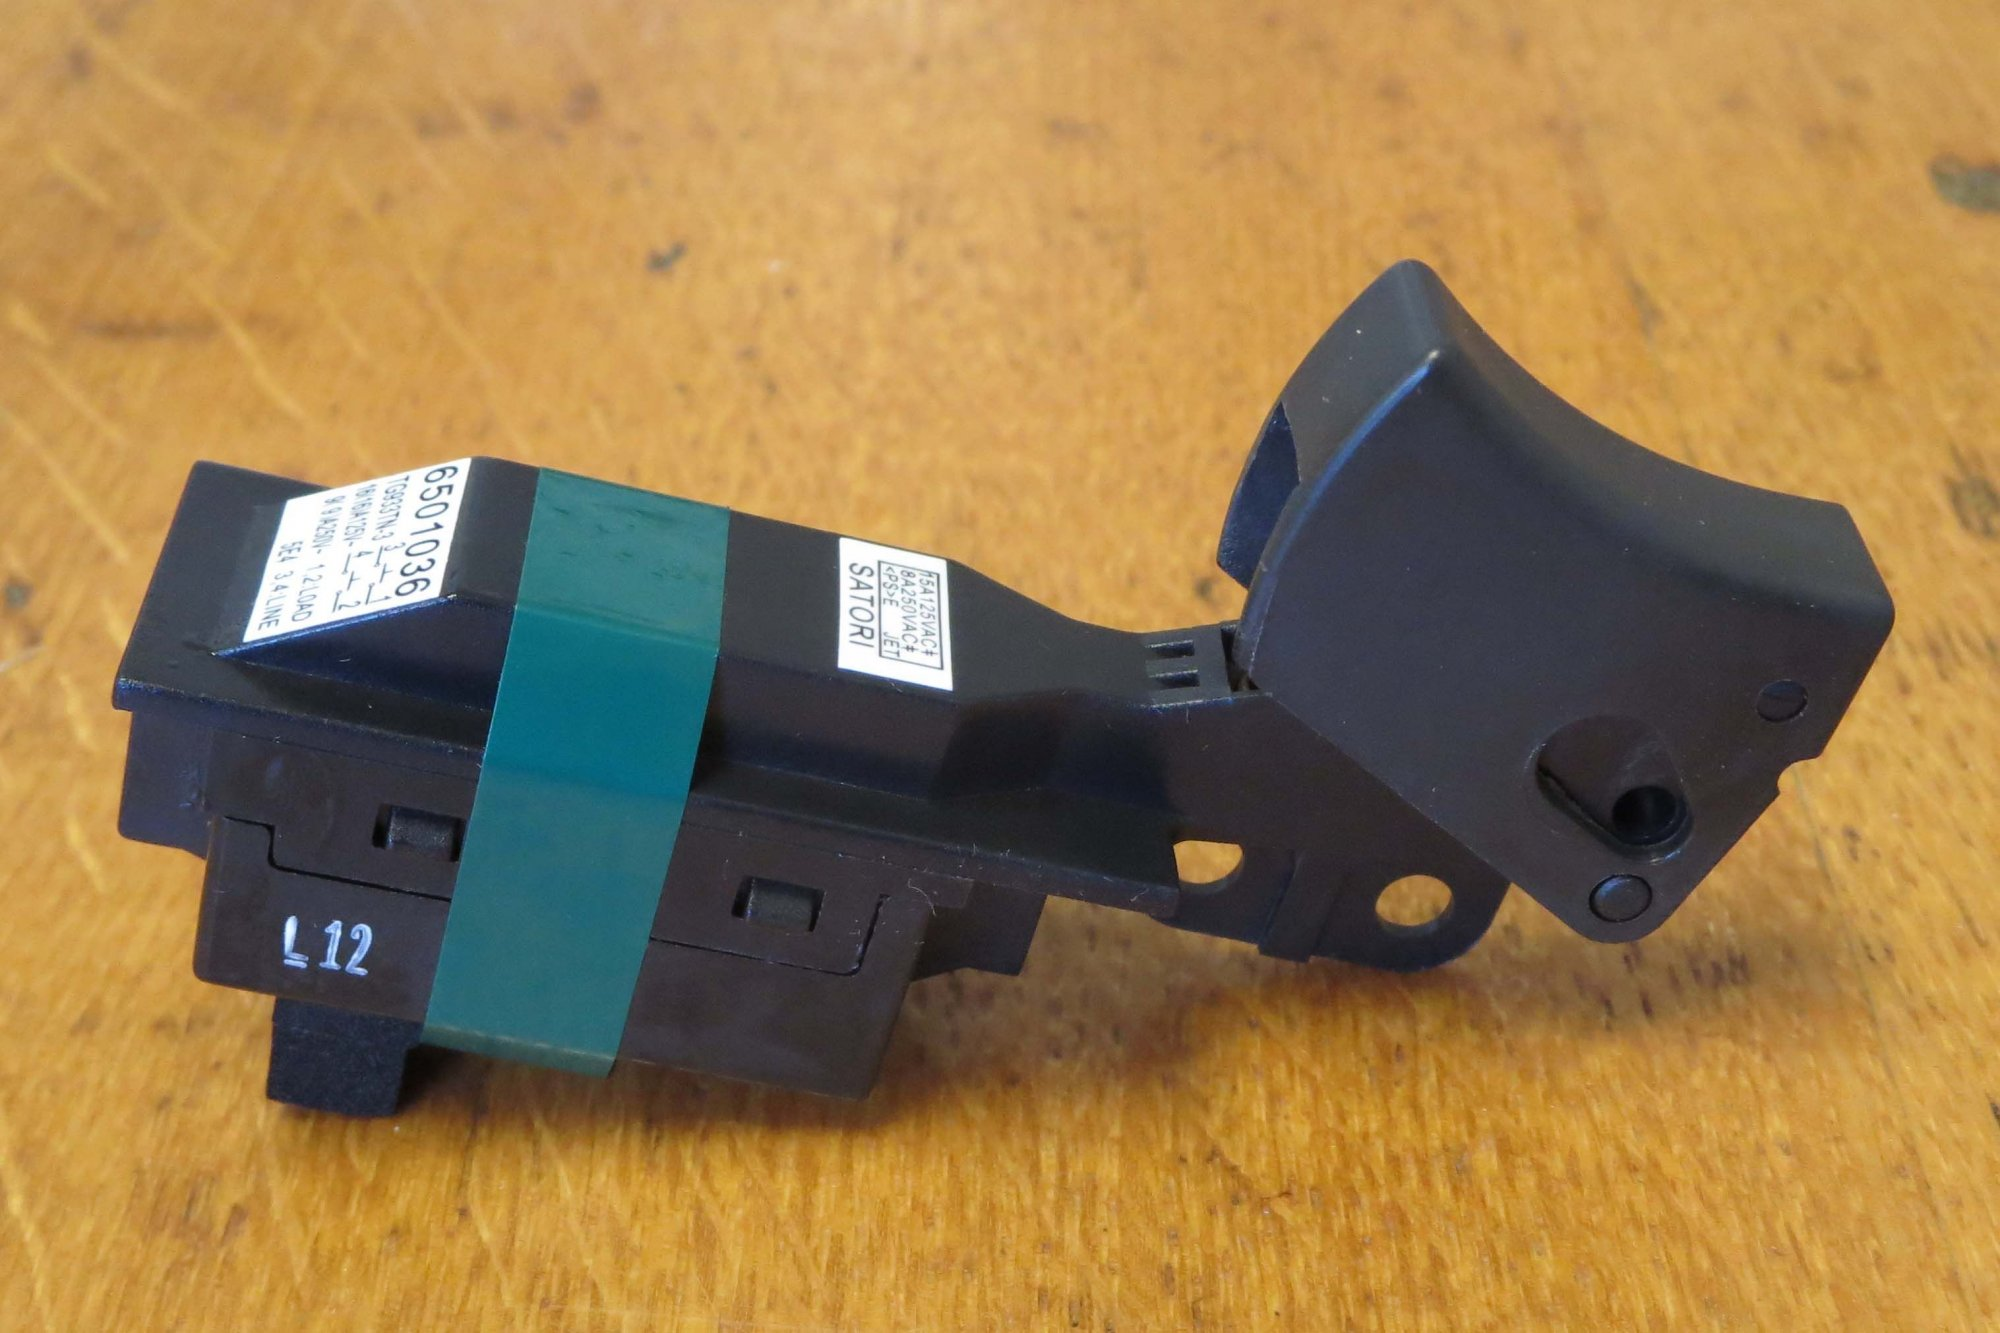 Makita Hypoid Saw Switch